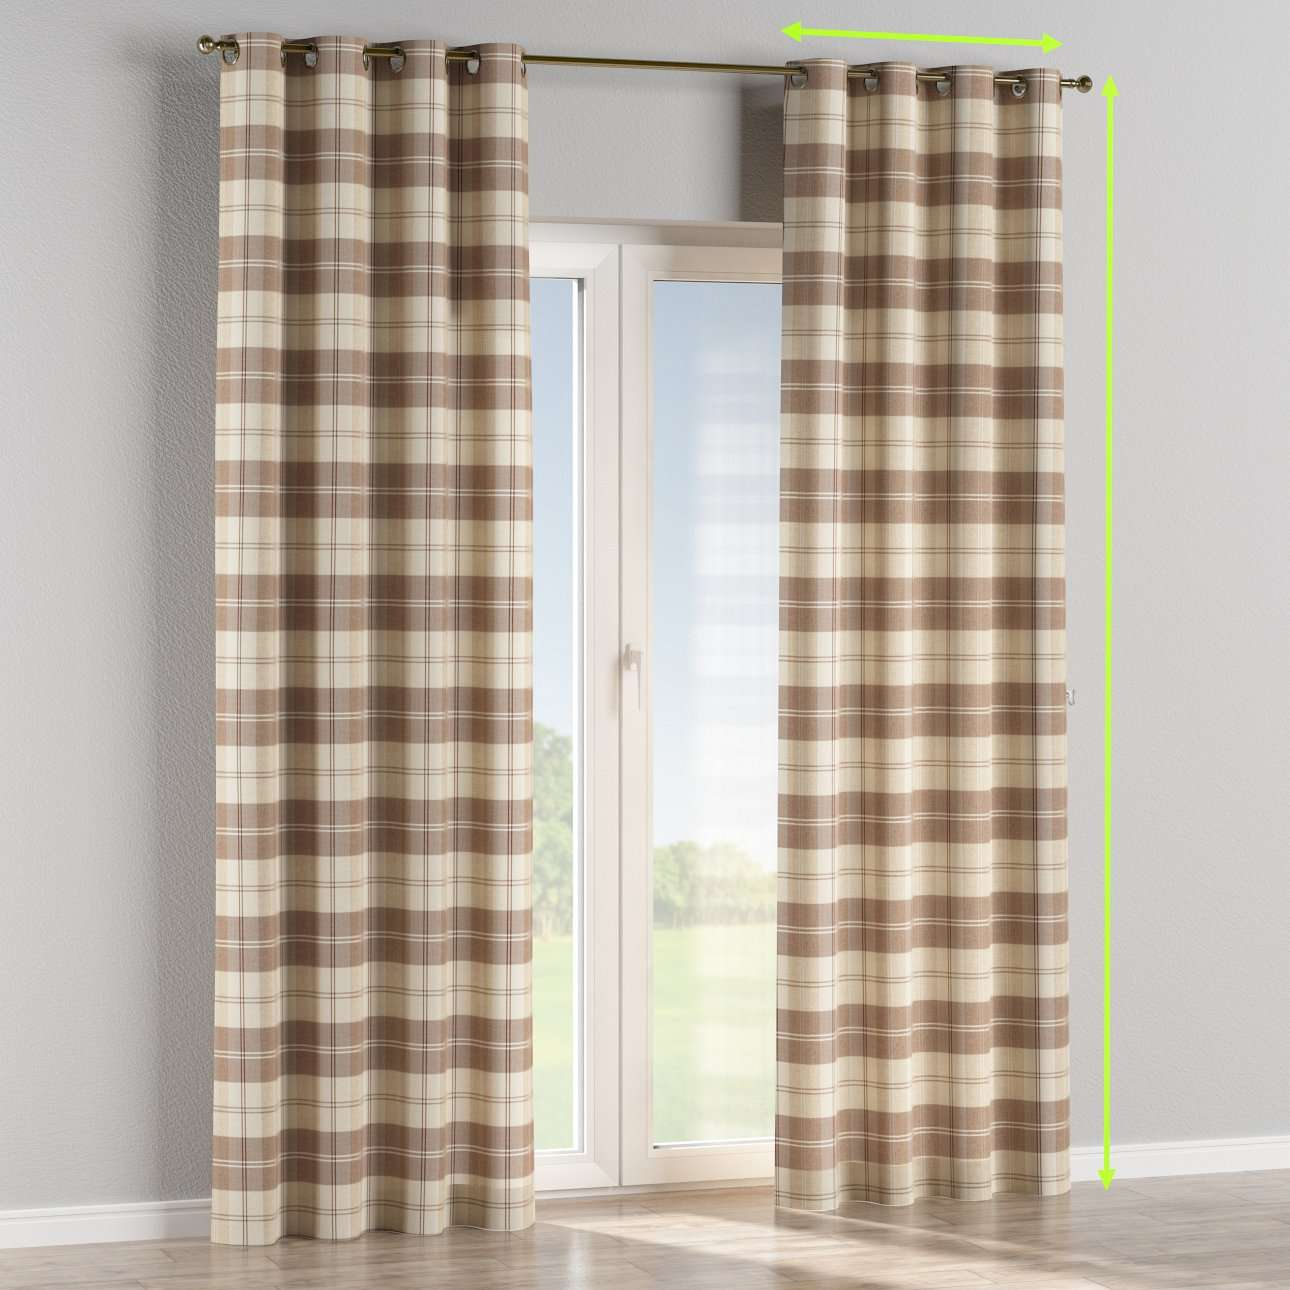 Eyelet curtains in collection Edinburgh, fabric: 115-80